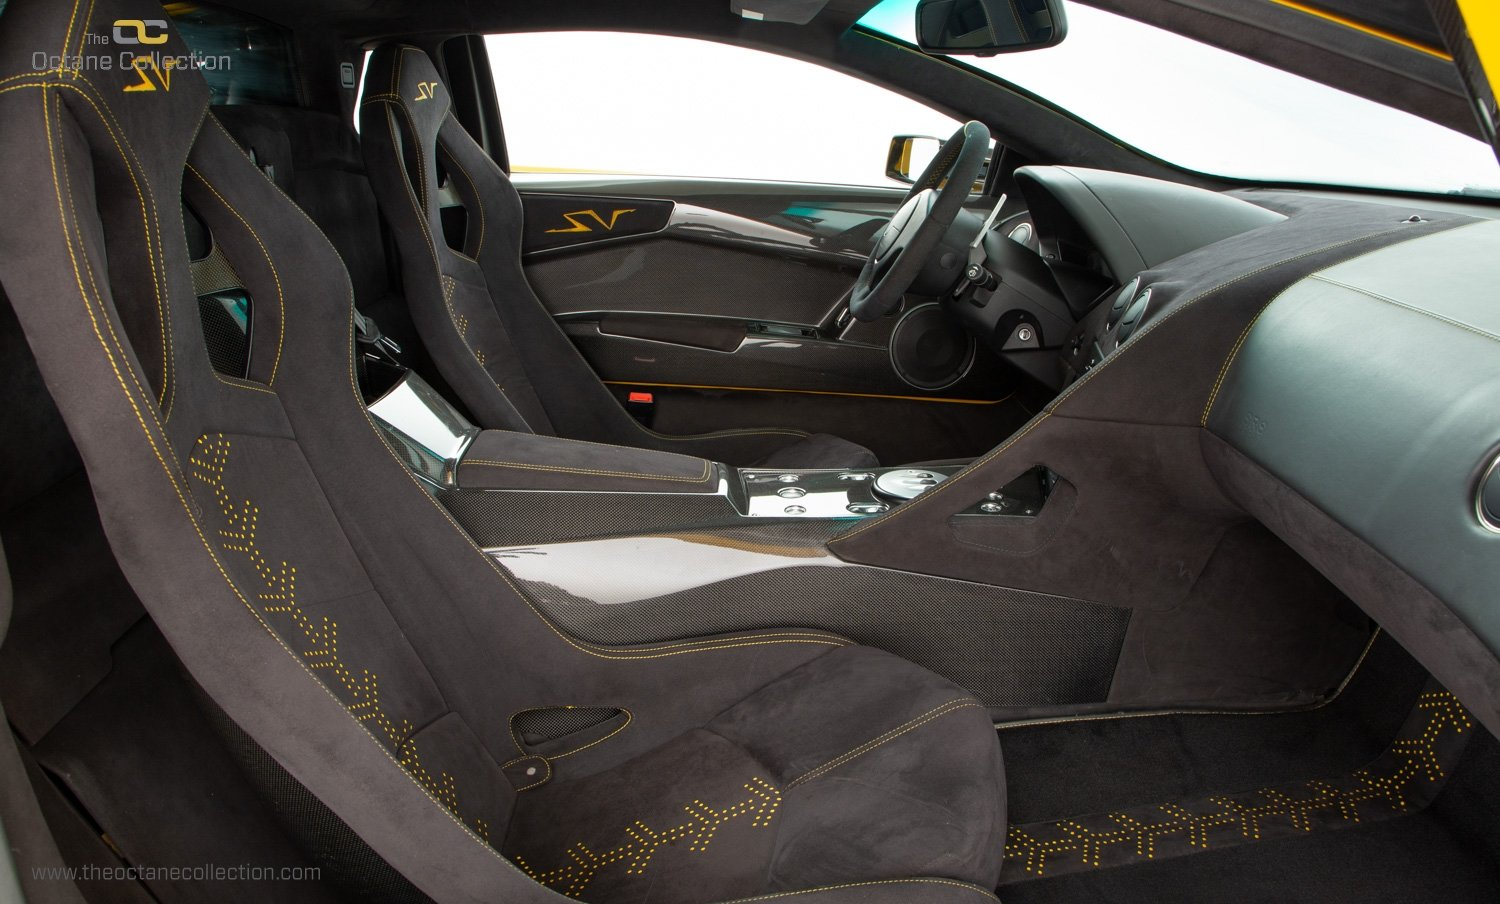 2009 LAMBORGHINI MURCIELAGO SV // 1 OF 186 PRODUCED // AEROPACK For Sale (picture 16 of 23)